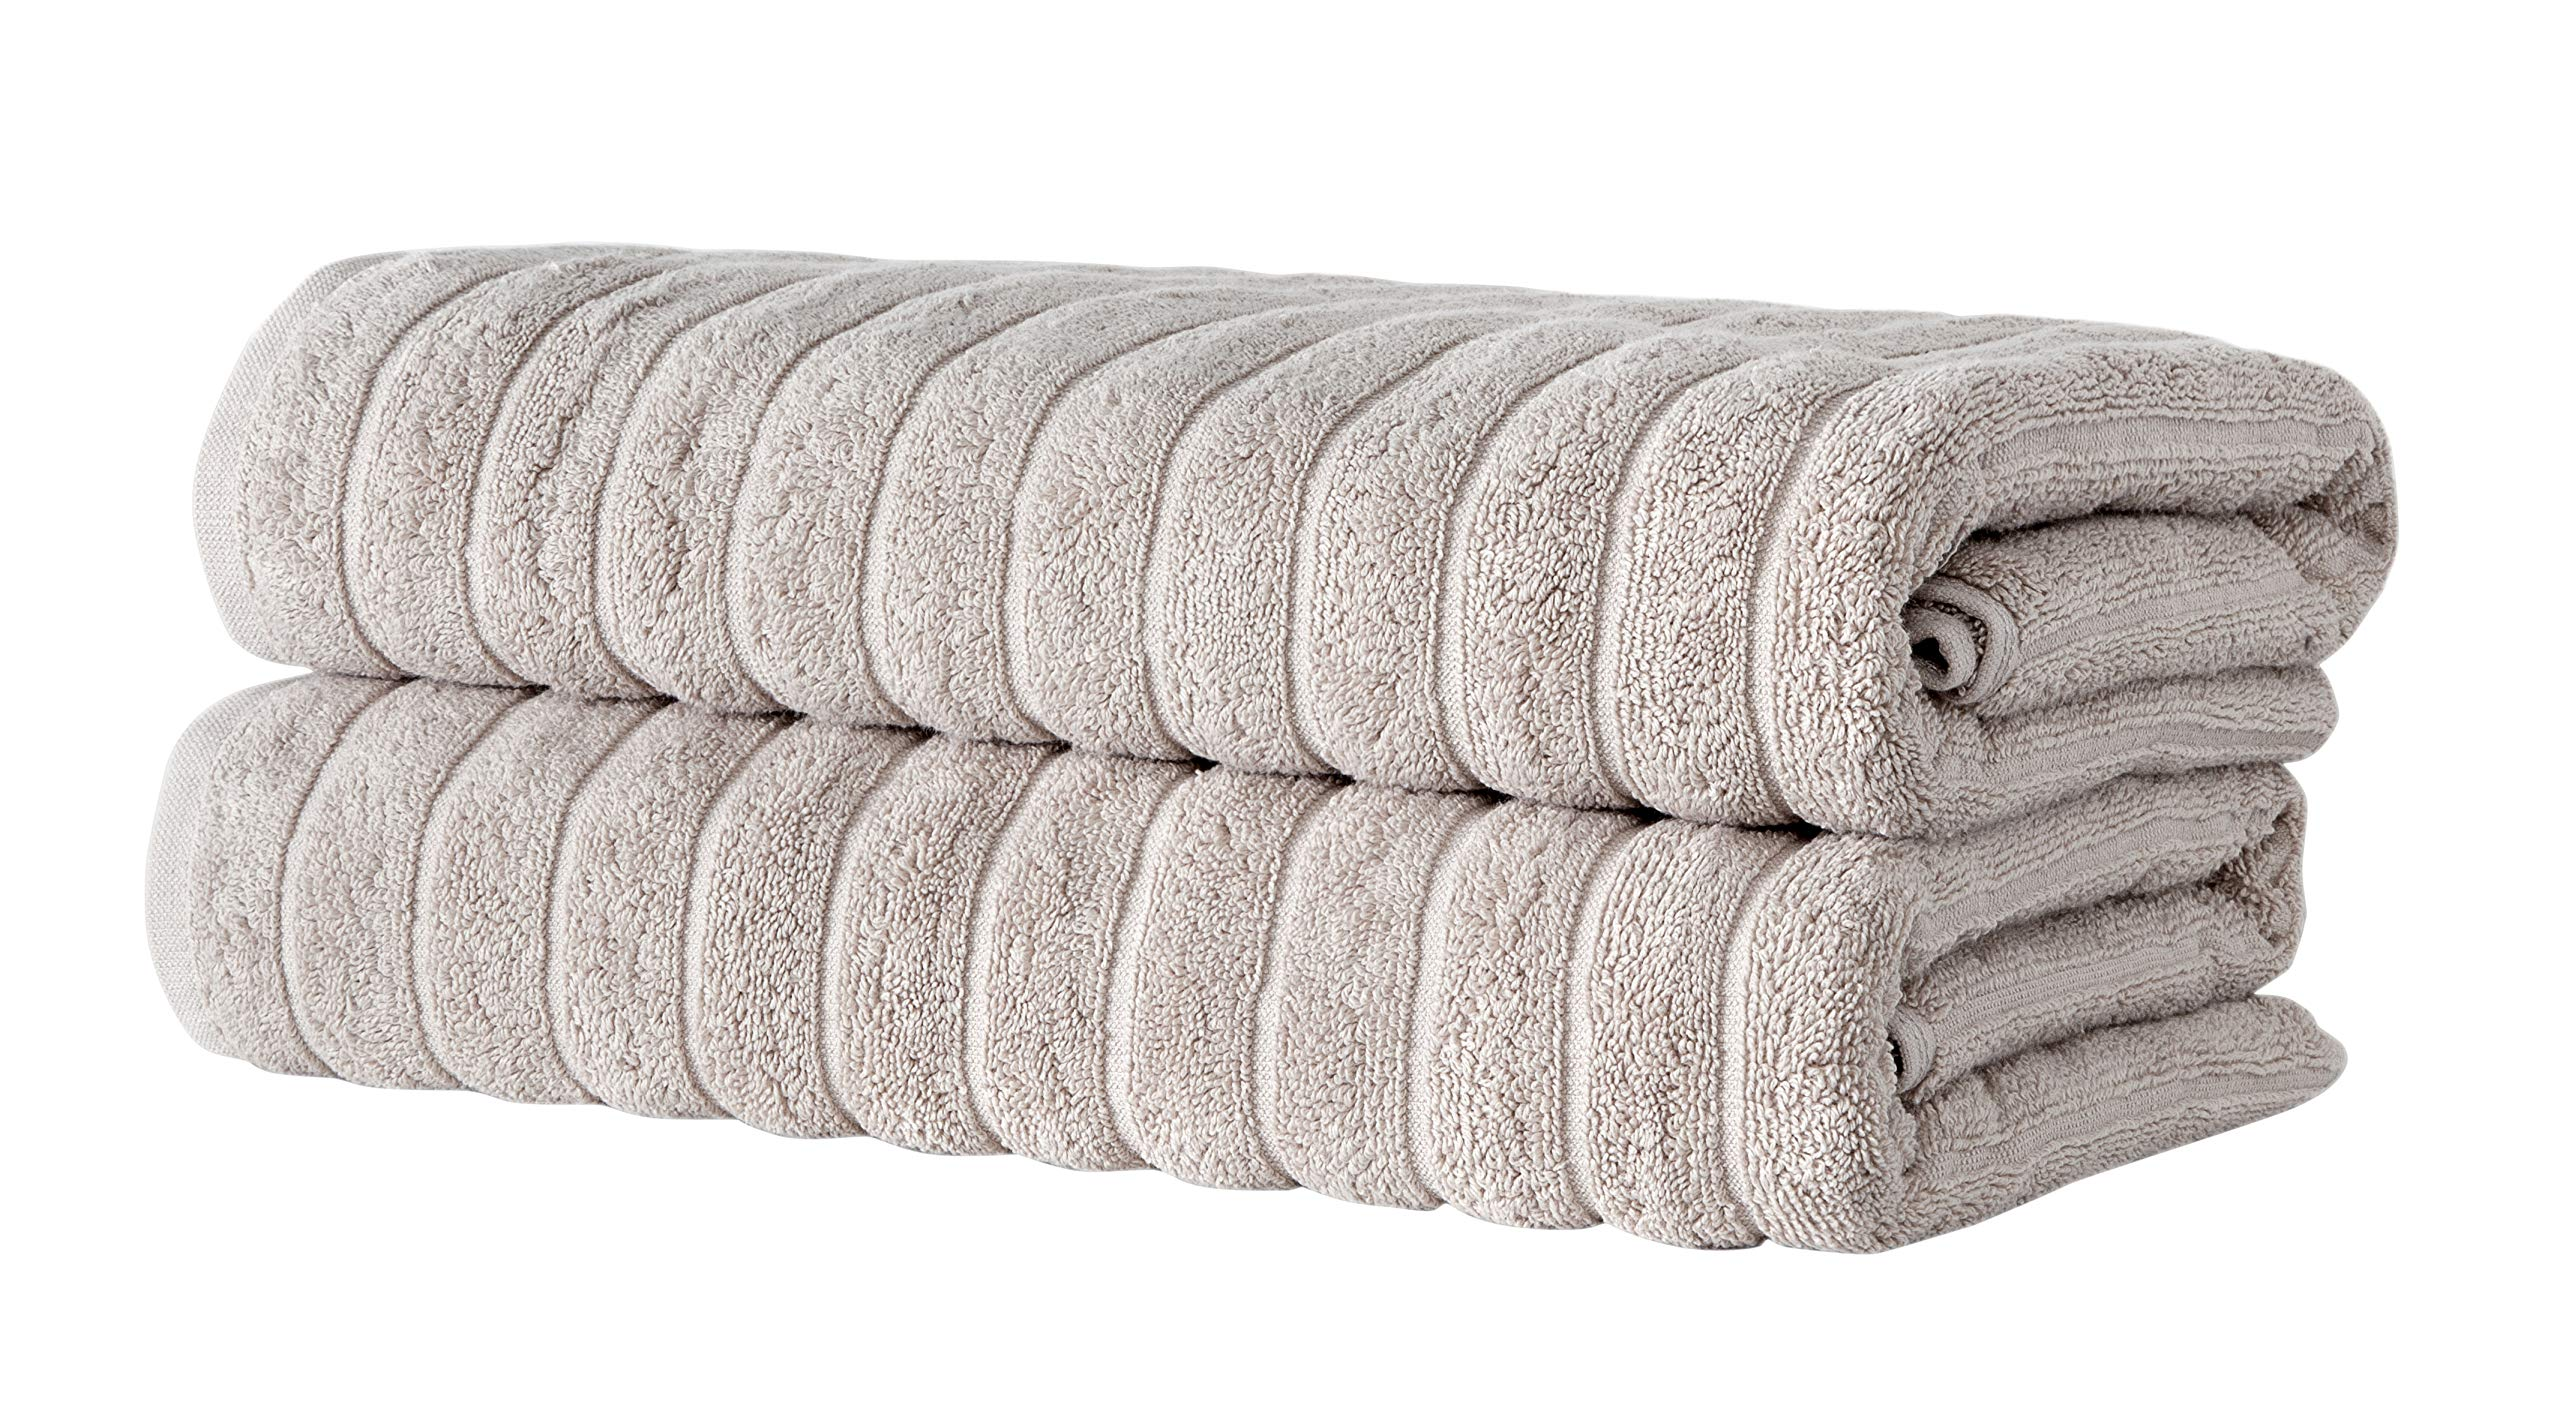 Durable /& Plush Luxury Towels Bagno Milano Jacquard-Woven Towels Soft Spa Towel Bundle- Mint 5 Pcs Ultra-Absorbent /& Fast-Drying Spa Towels Eco-Friendly Towels Non-GMO Turkish Cotton Towels